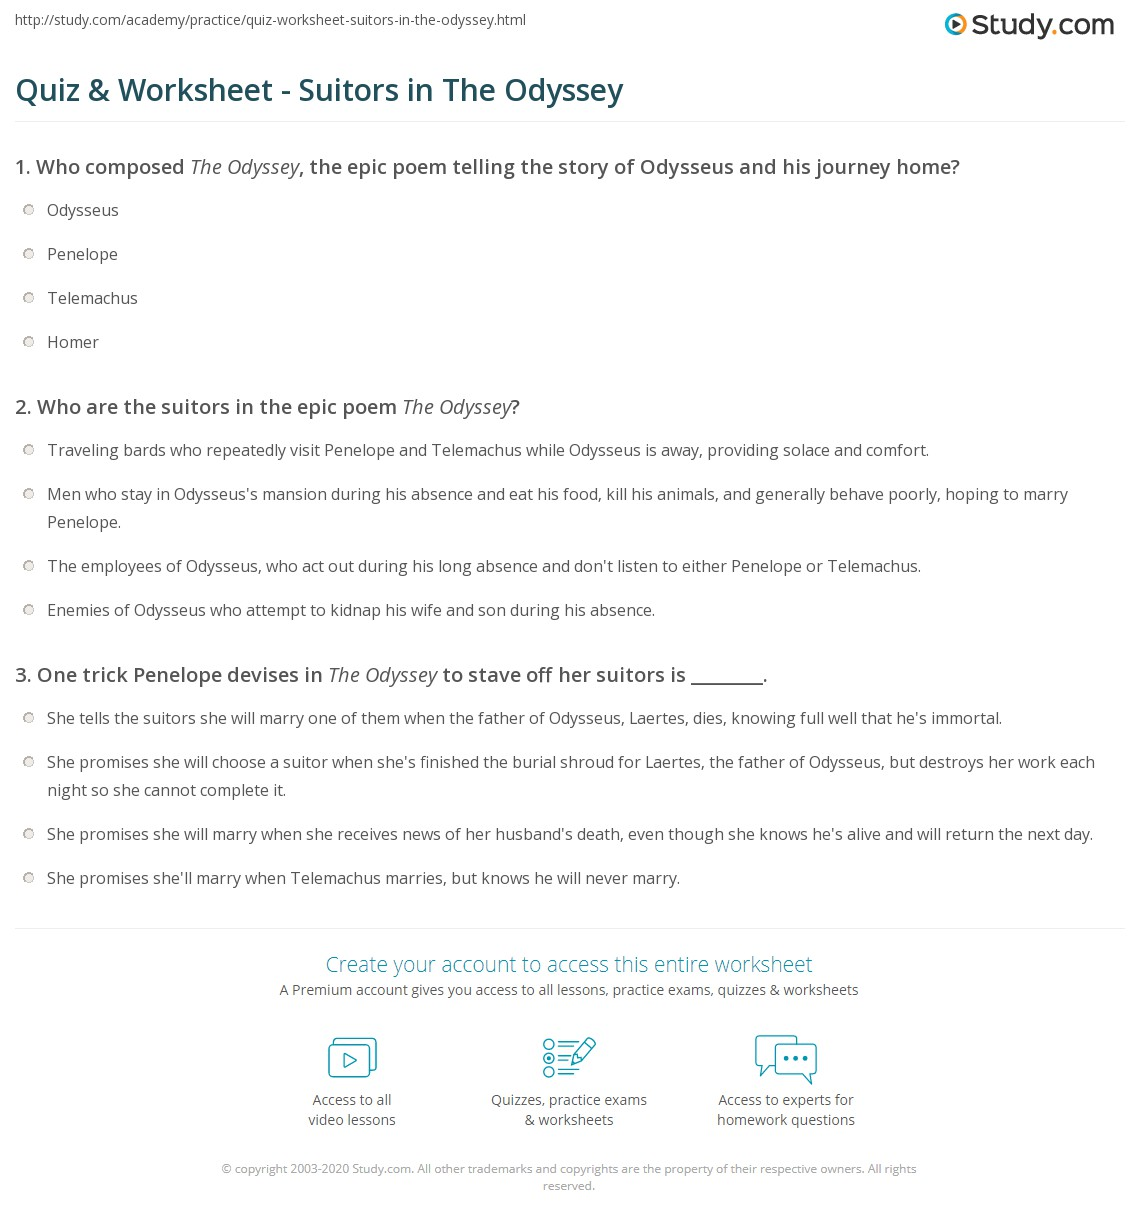 Odyssey Worksheets Photos - Toribeedesign